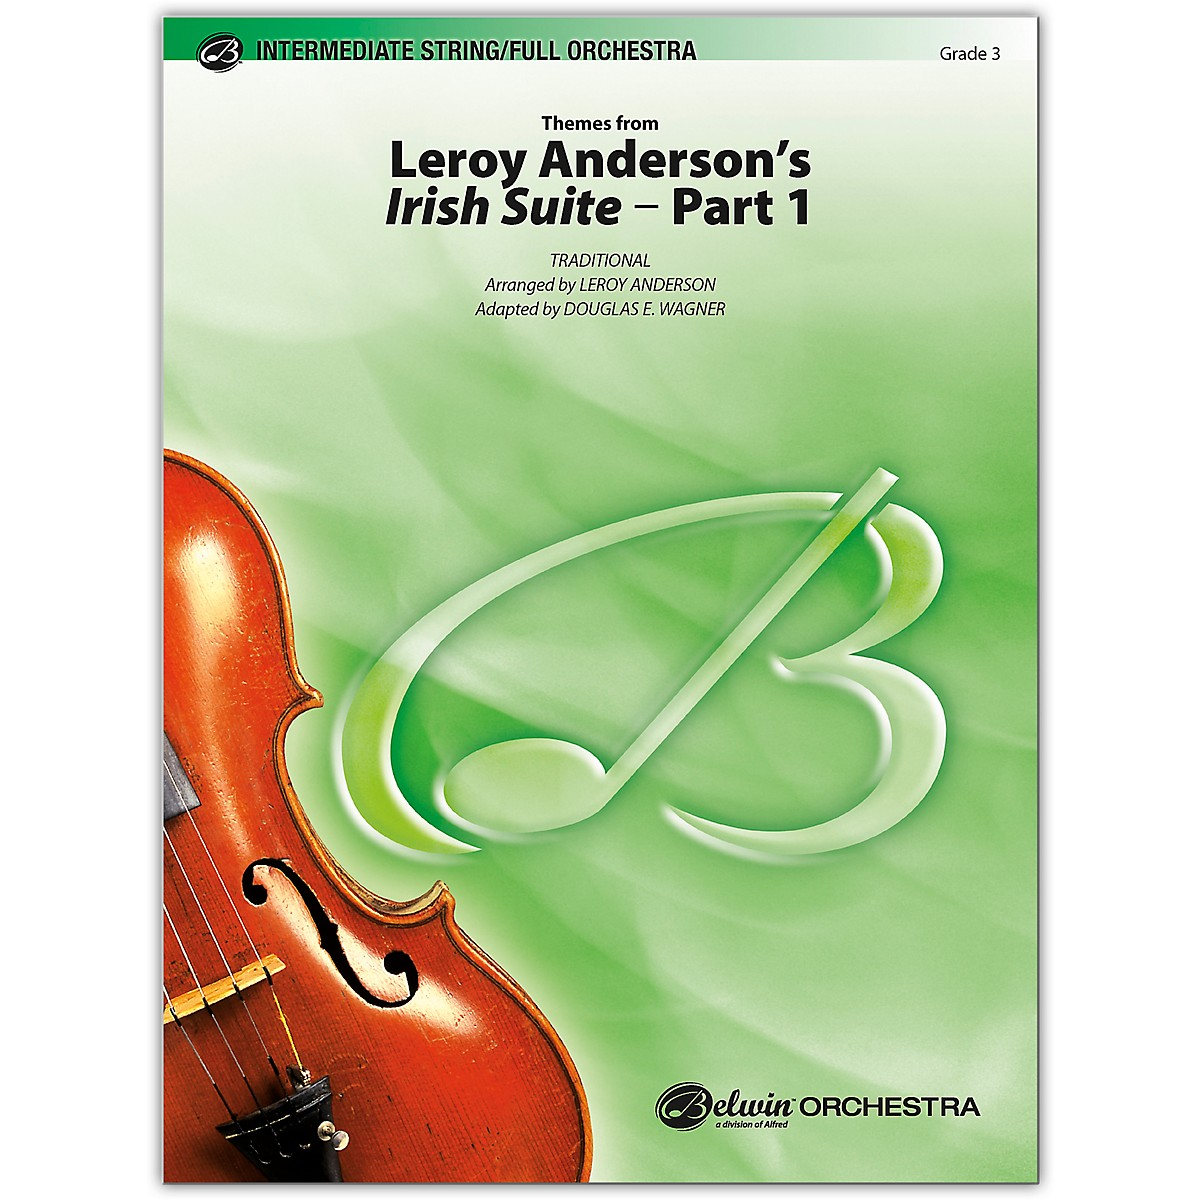 BELWIN Leroy Anderson's Irish Suite, Part 1 (Themes from) 3